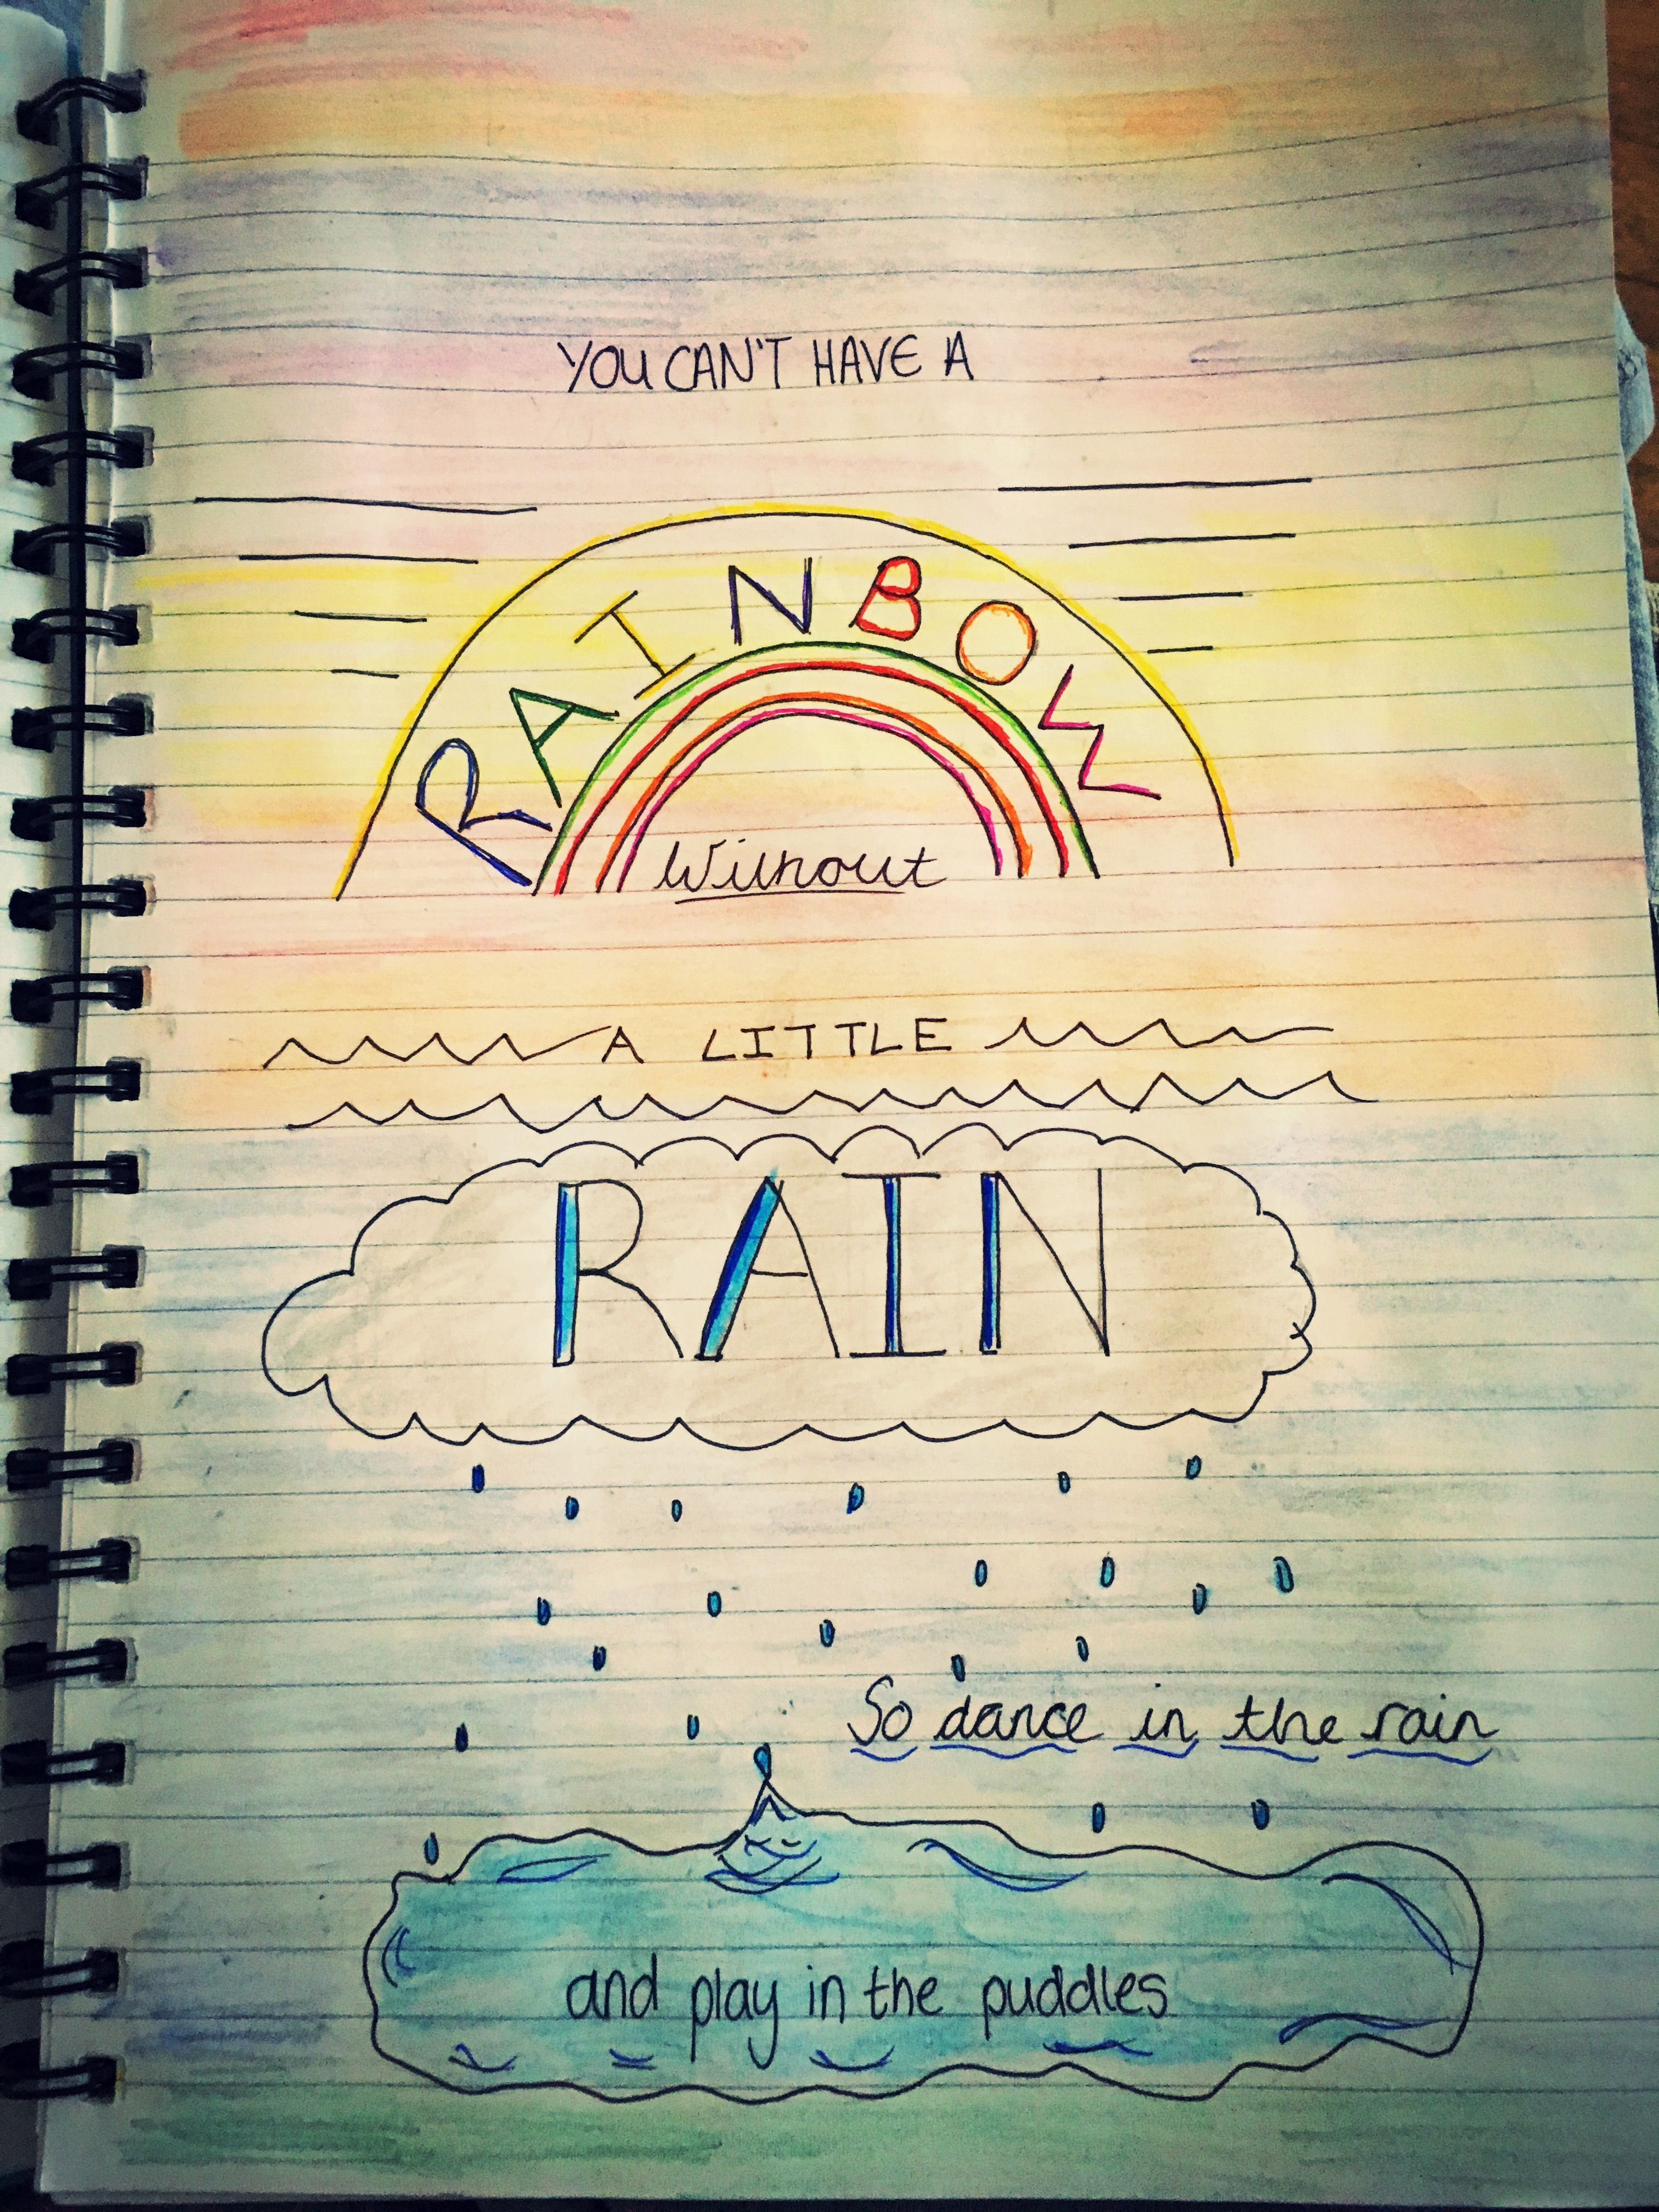 Quotes Journal Impressive Rain Quotebullet Journal Page  Bullet Journal  Pinterest